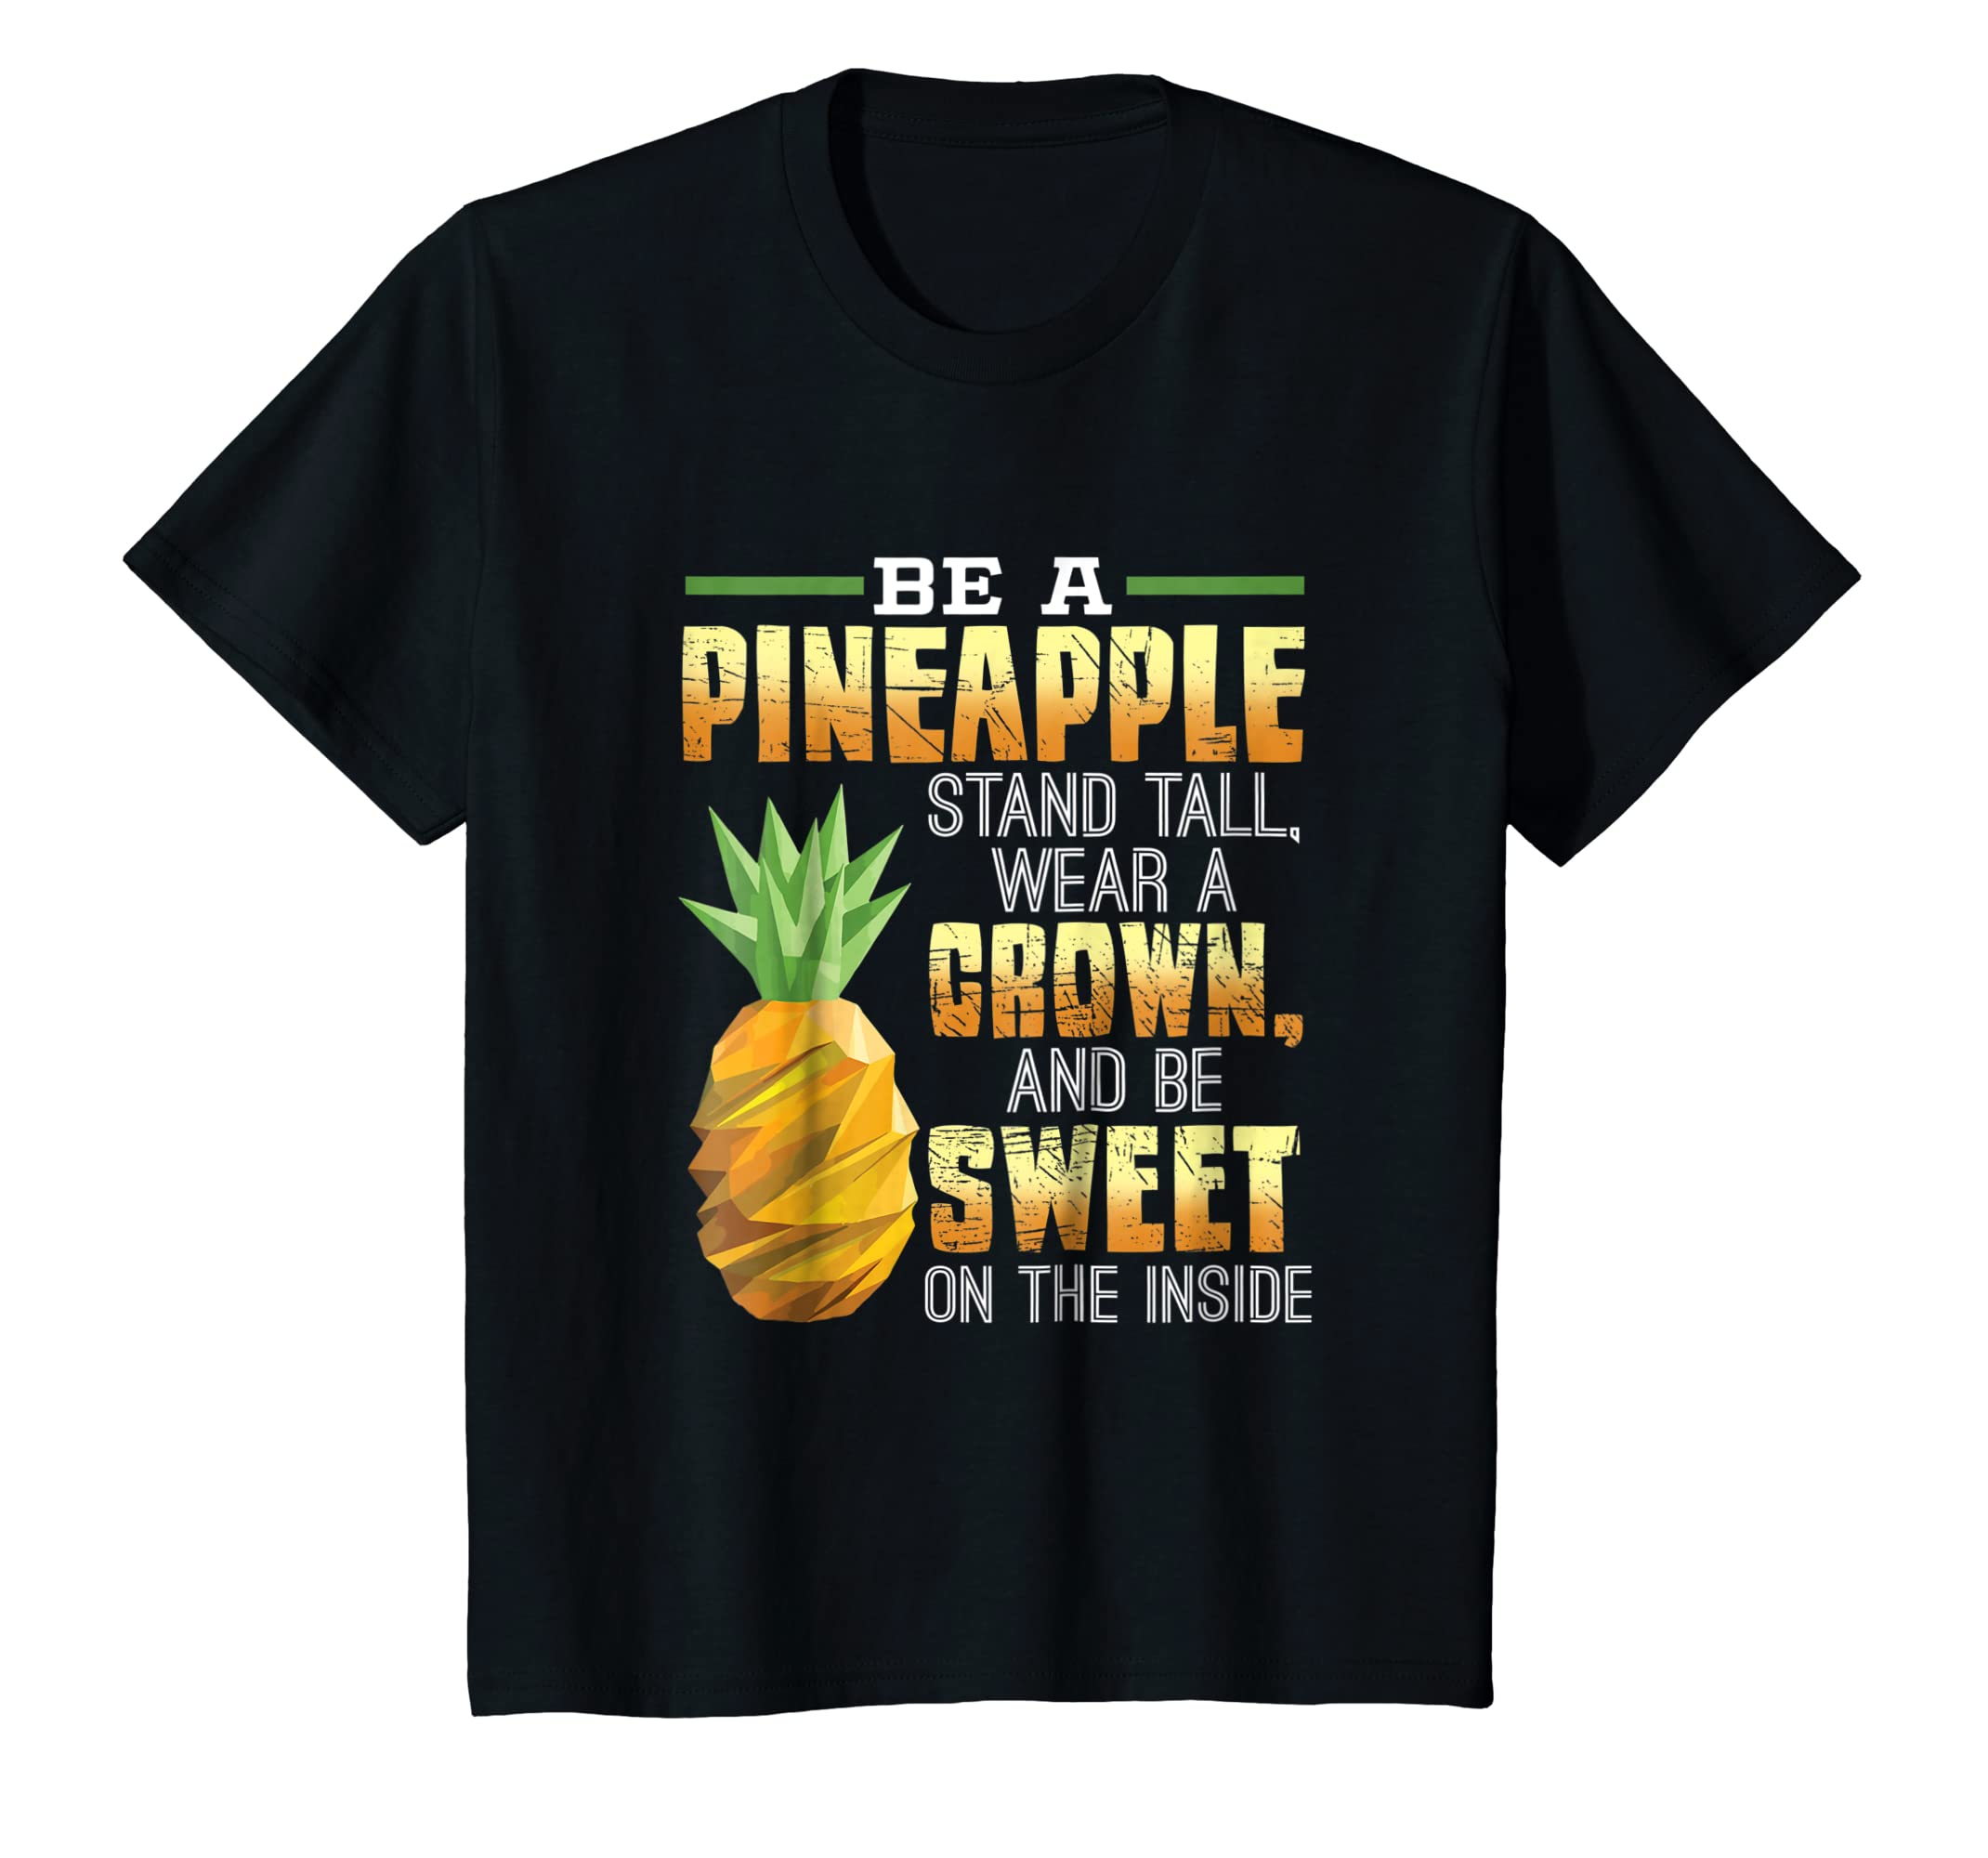 a15c96fd Amazon.com: Be A Pineapple T-Shirt Funny Quote Tee: Clothing